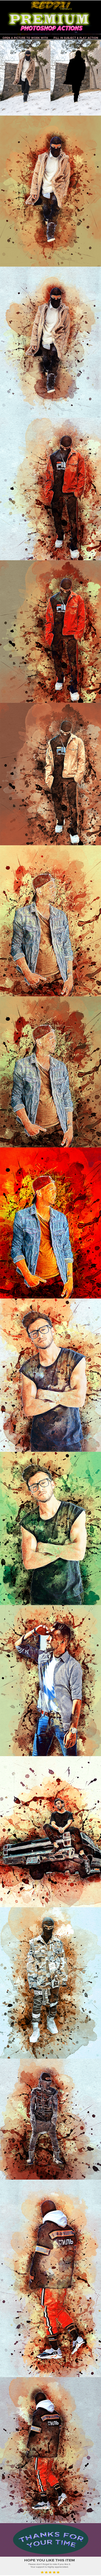 Painting Draw Action Photoshop - Photo Effects Actions